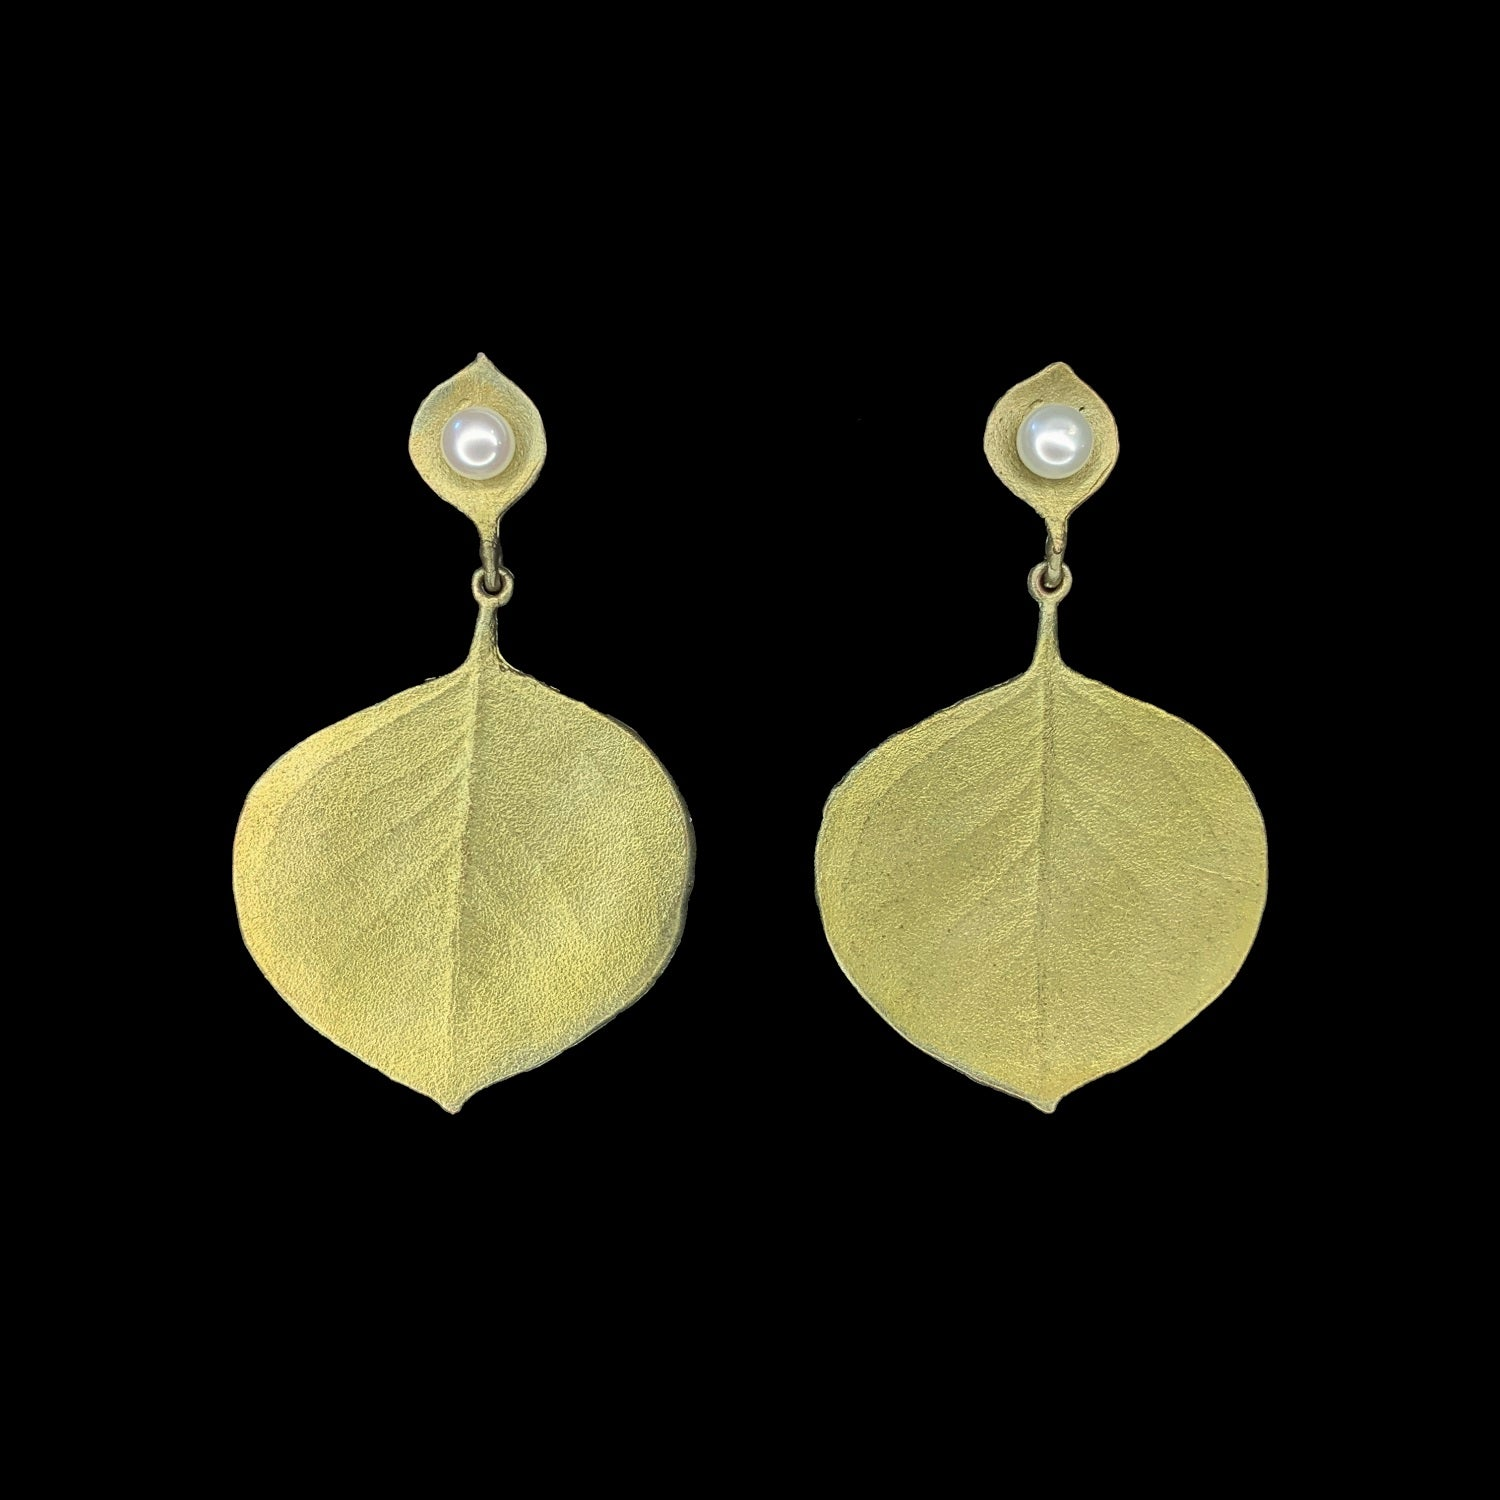 Round Leaf Eucalyptus Earrings - Post